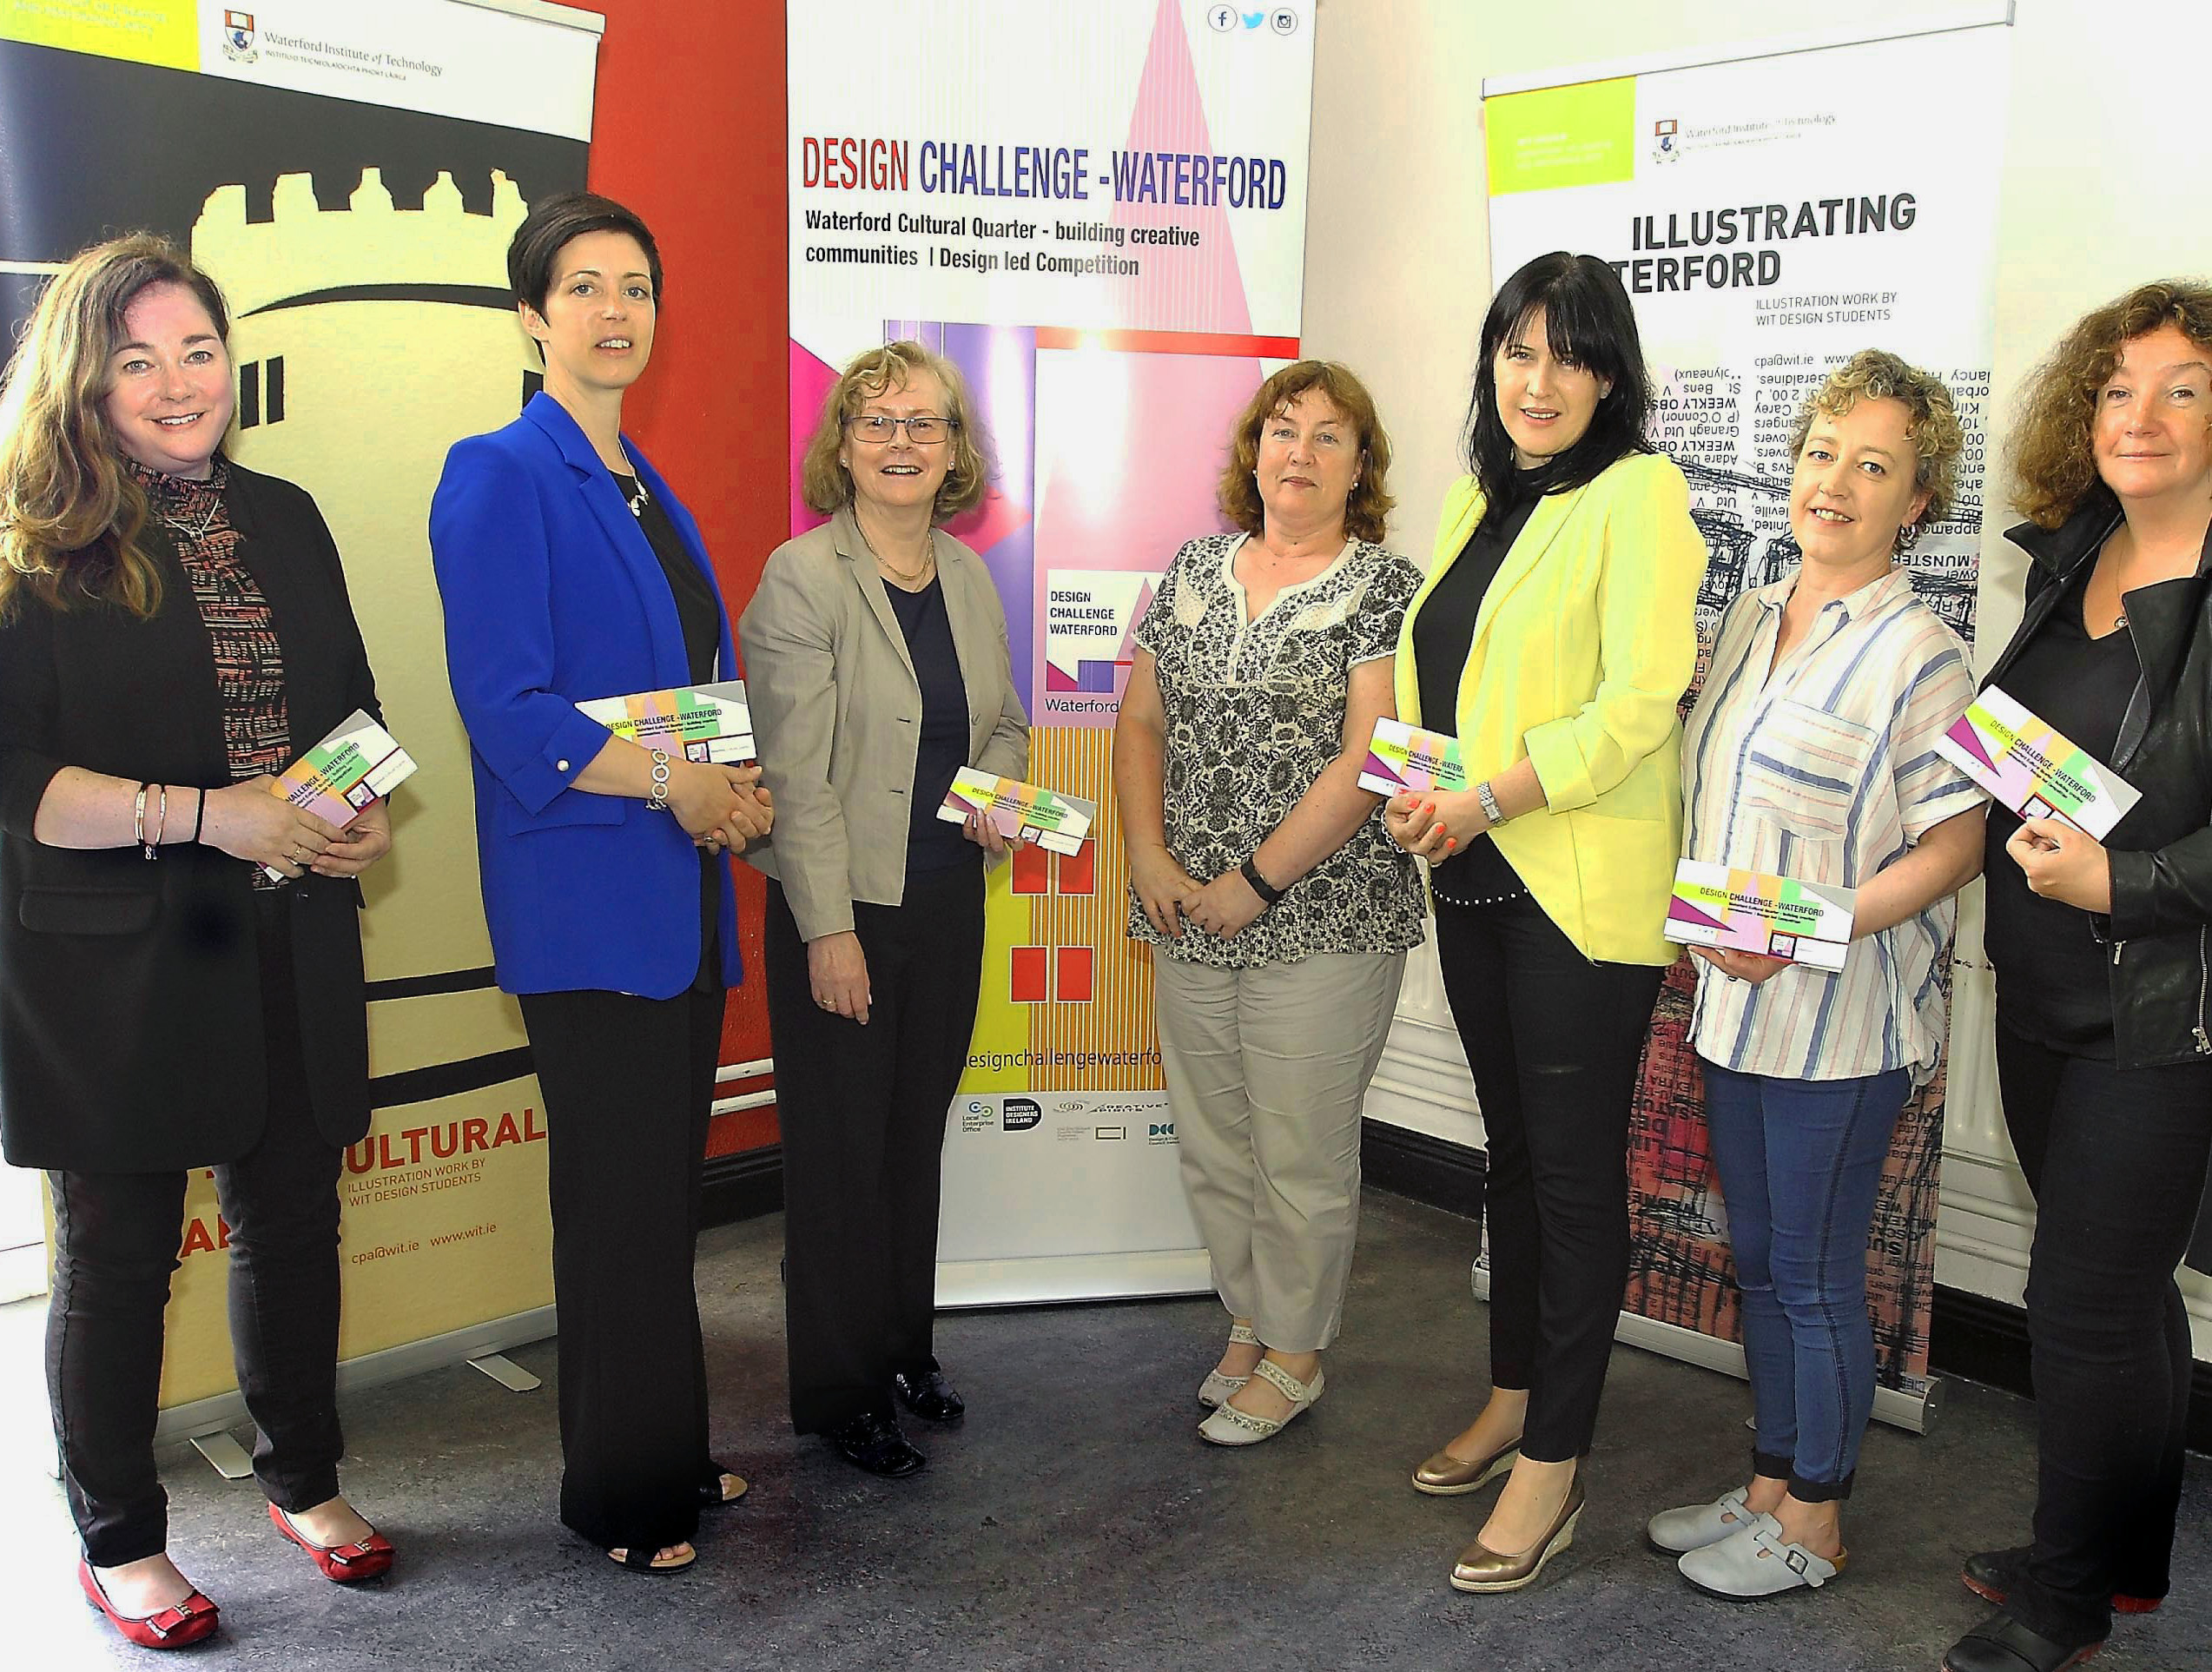 Pictured: Dr. Fiona Dowling, Lecturer in Design, WIT; Katherine Collins, Waterford City & County Council; Marian O'Neill Head of Department - Creative & Performing Arts, WIT; Dr. Suzanne Denieffe, Head of School - Humanities, WIT;  Emma Haran, Waterford City & County Council; Síle Penkert, Executive Director, Garter Lane Arts Centre; and Joy Rooney, Lecturer in Design, WIT.